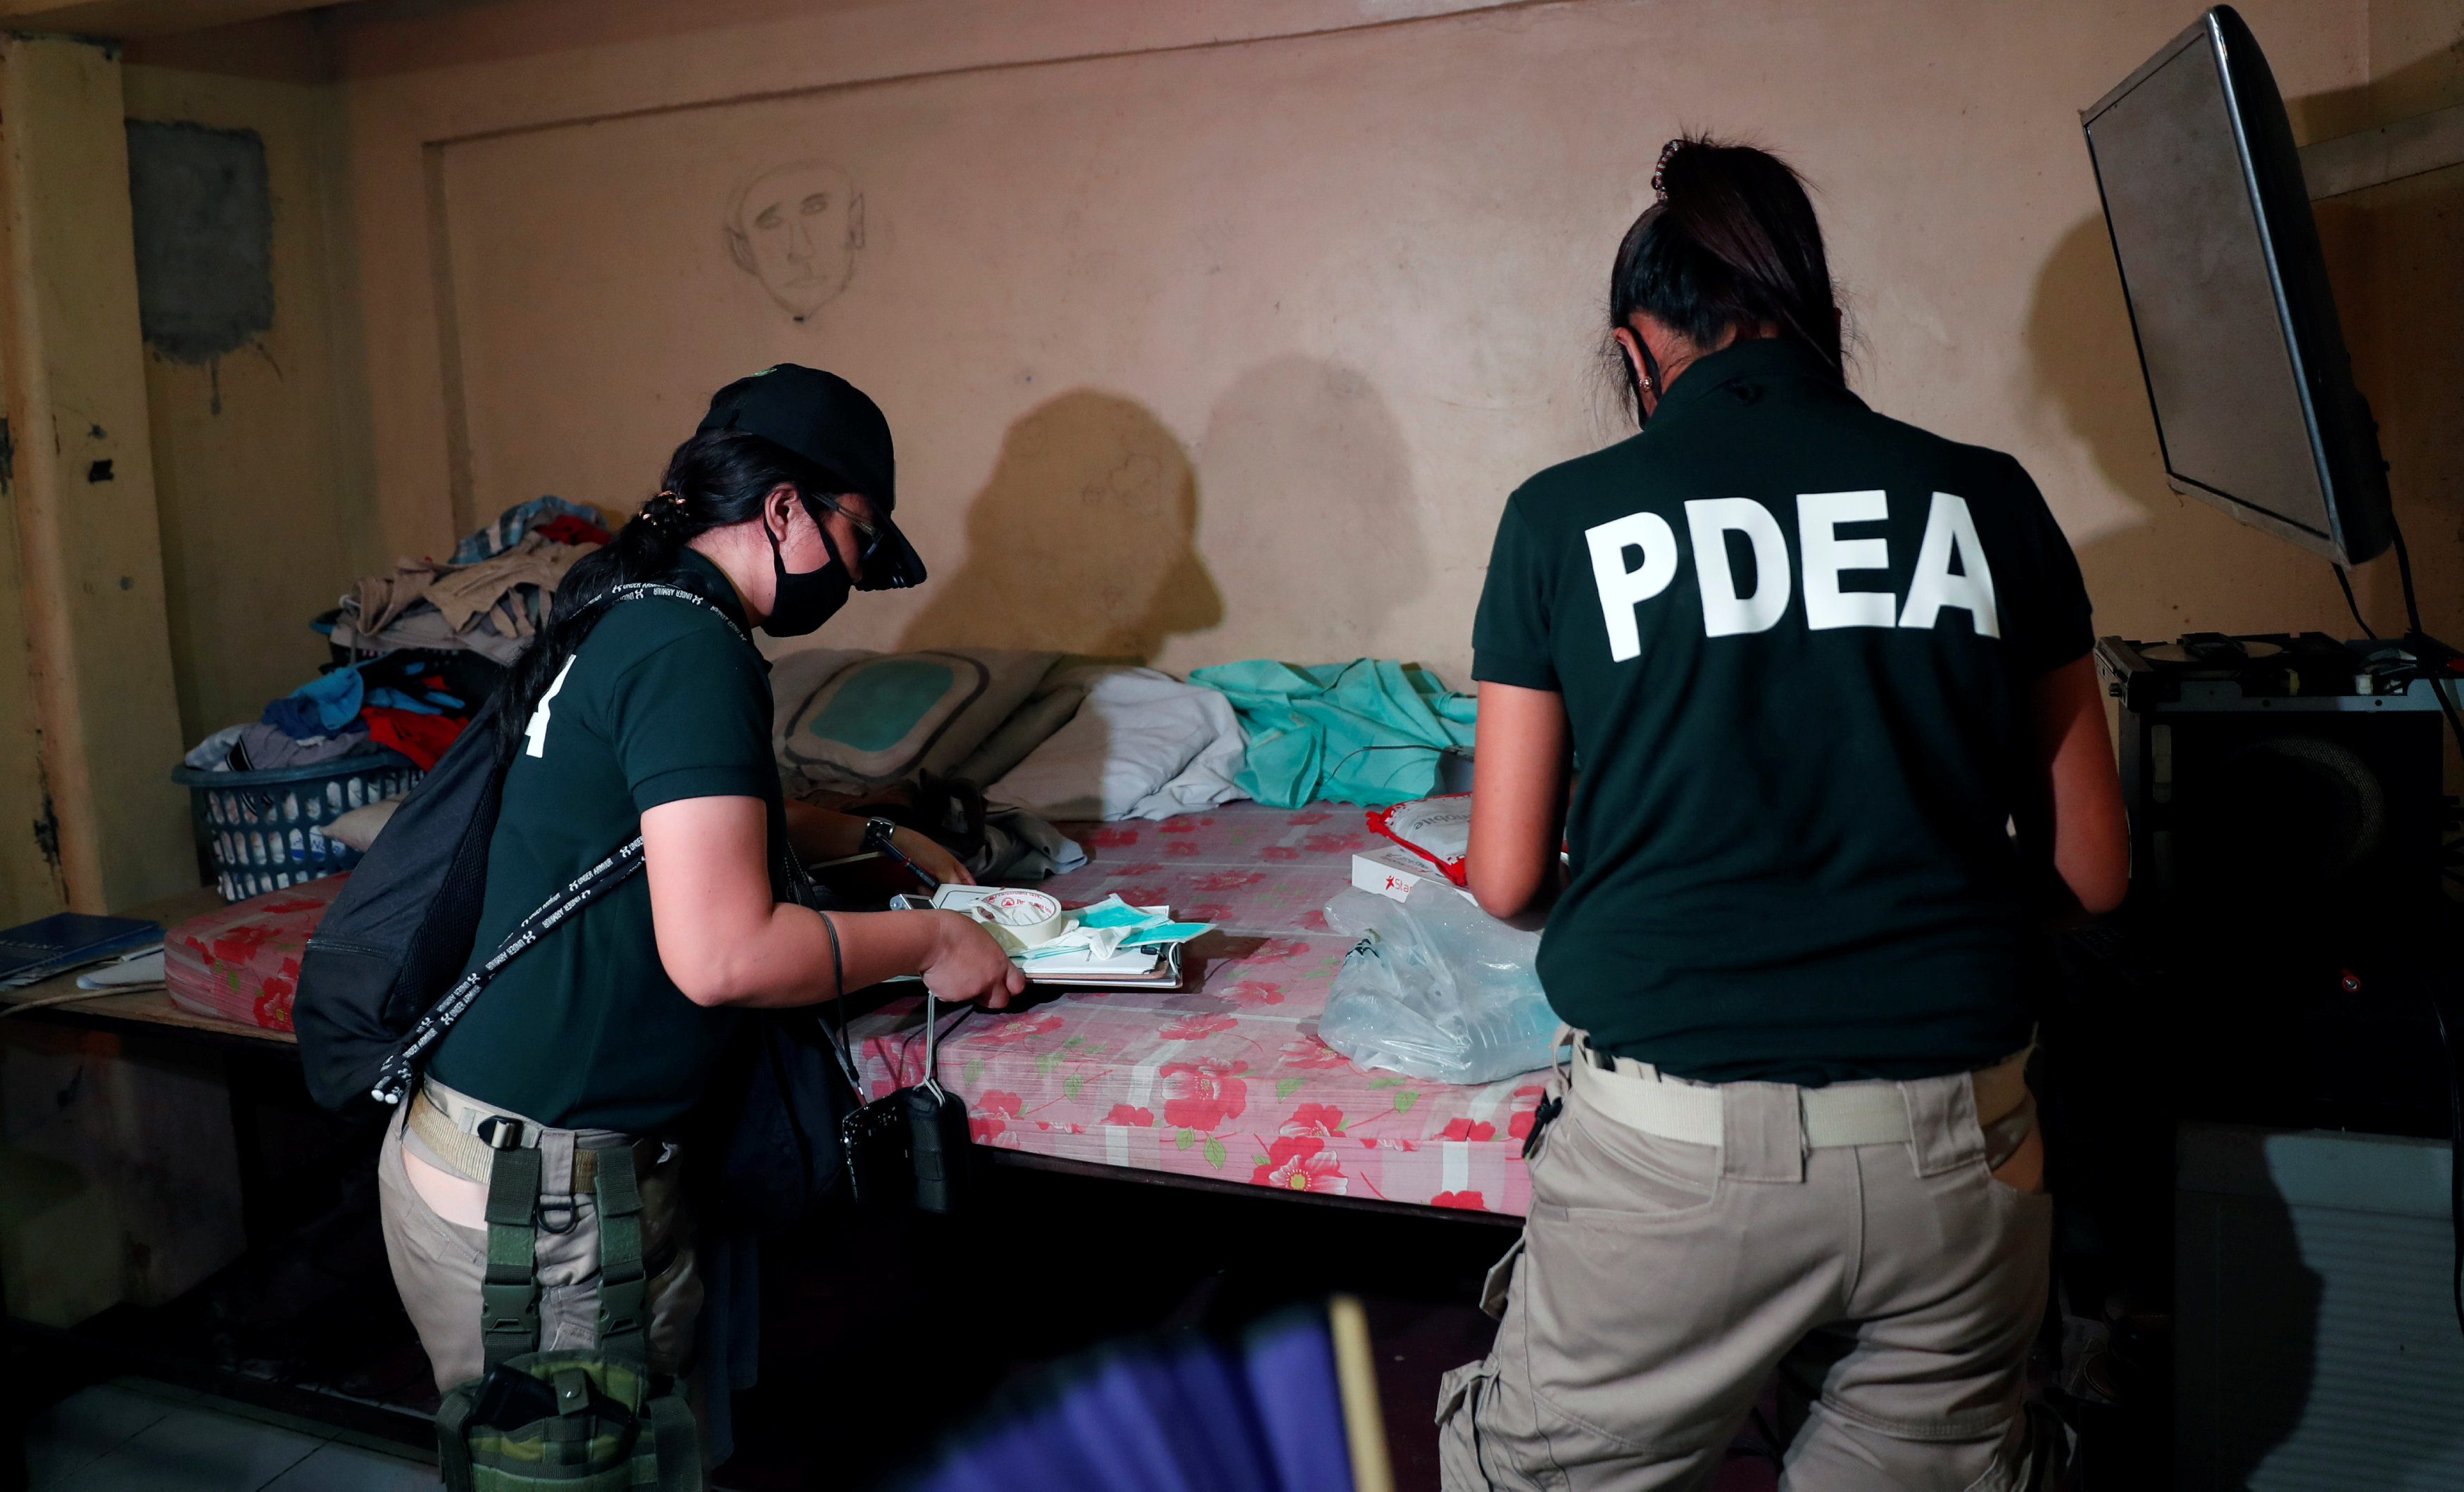 Agents of the Philippine Drugs Enforcement Agency (PDEA) search a house of a drug trafficker during a raid in Tondo, Manila, Philippines, December 10, 2017.